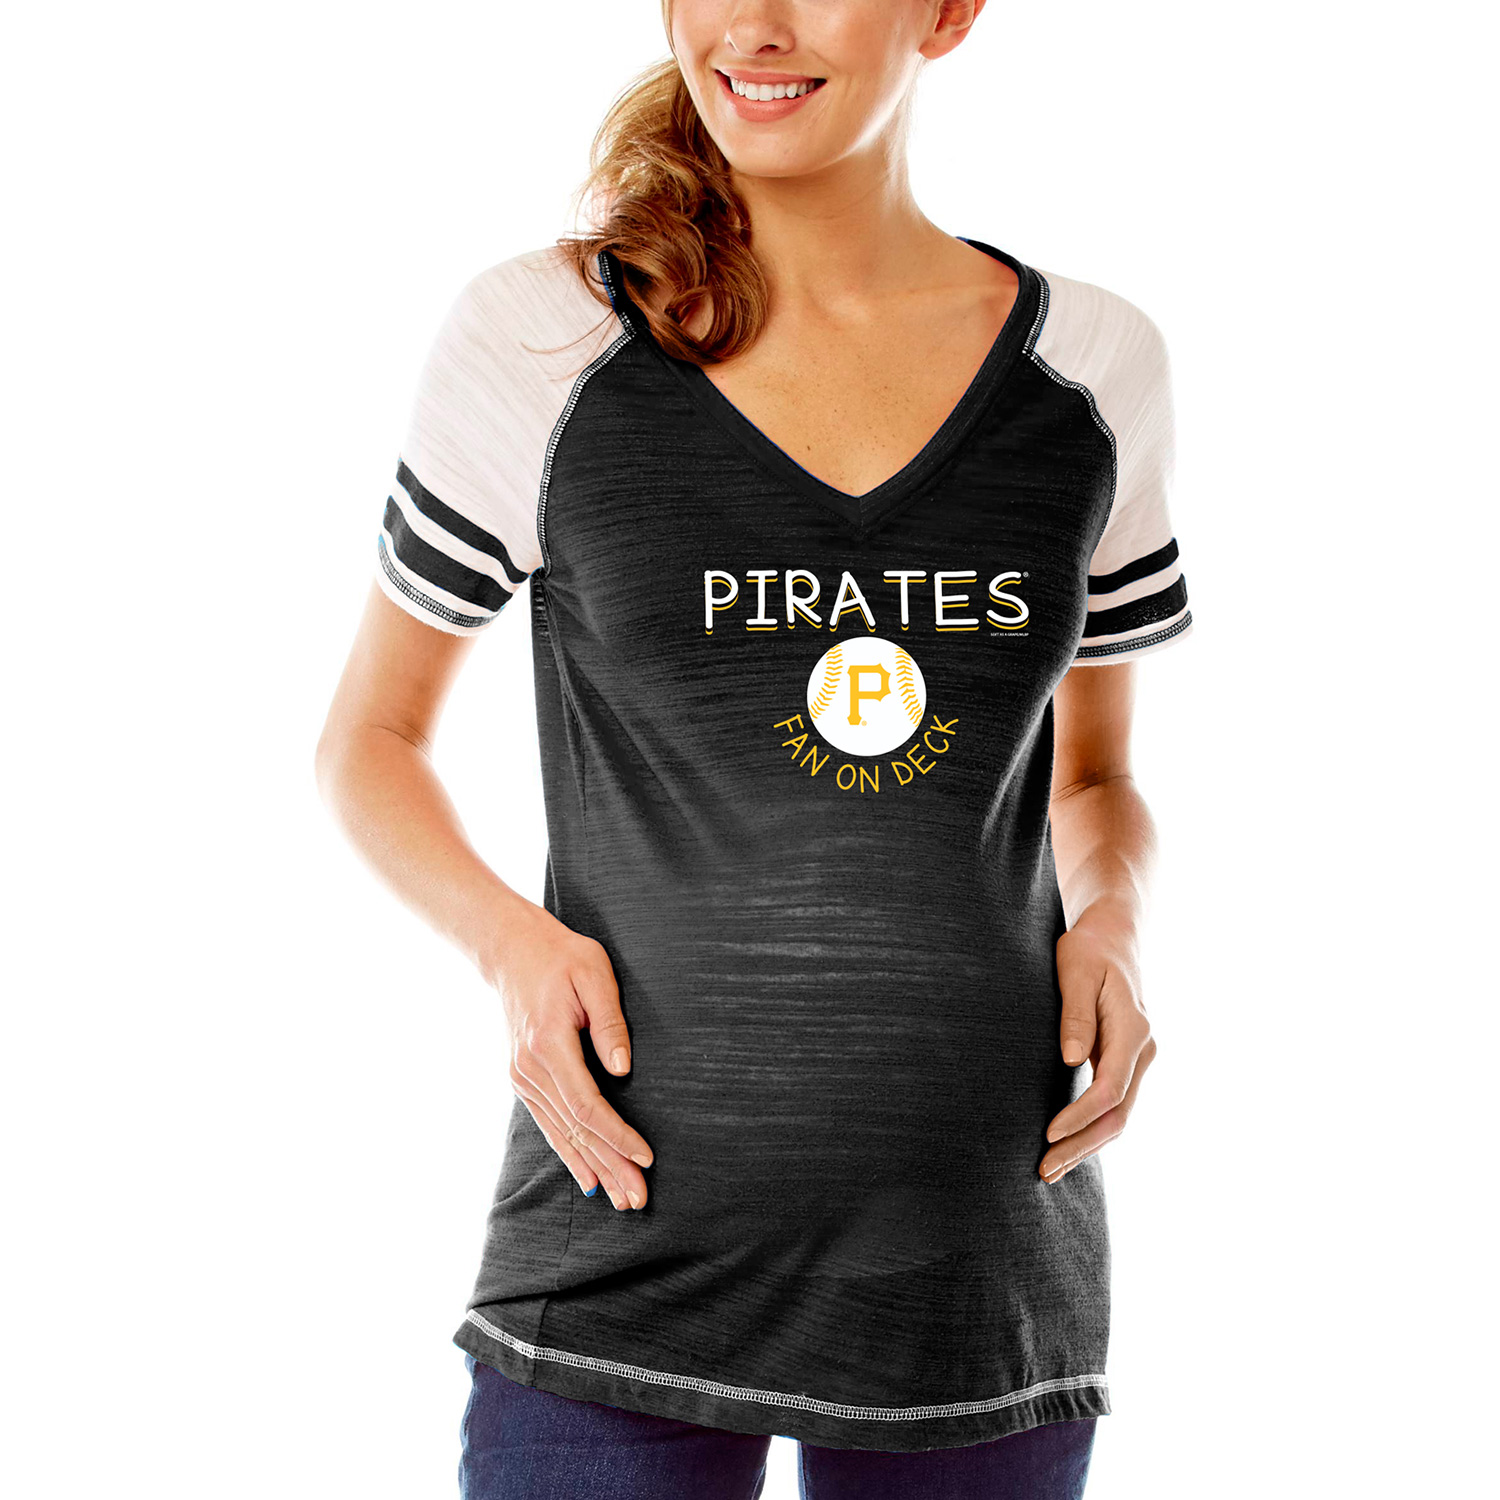 Pittsburgh Pirates Soft As A Grape Women's Maternity Leadoff Hitter Tri-Blend V-Neck Raglan Sleeve T-Shirt - Black